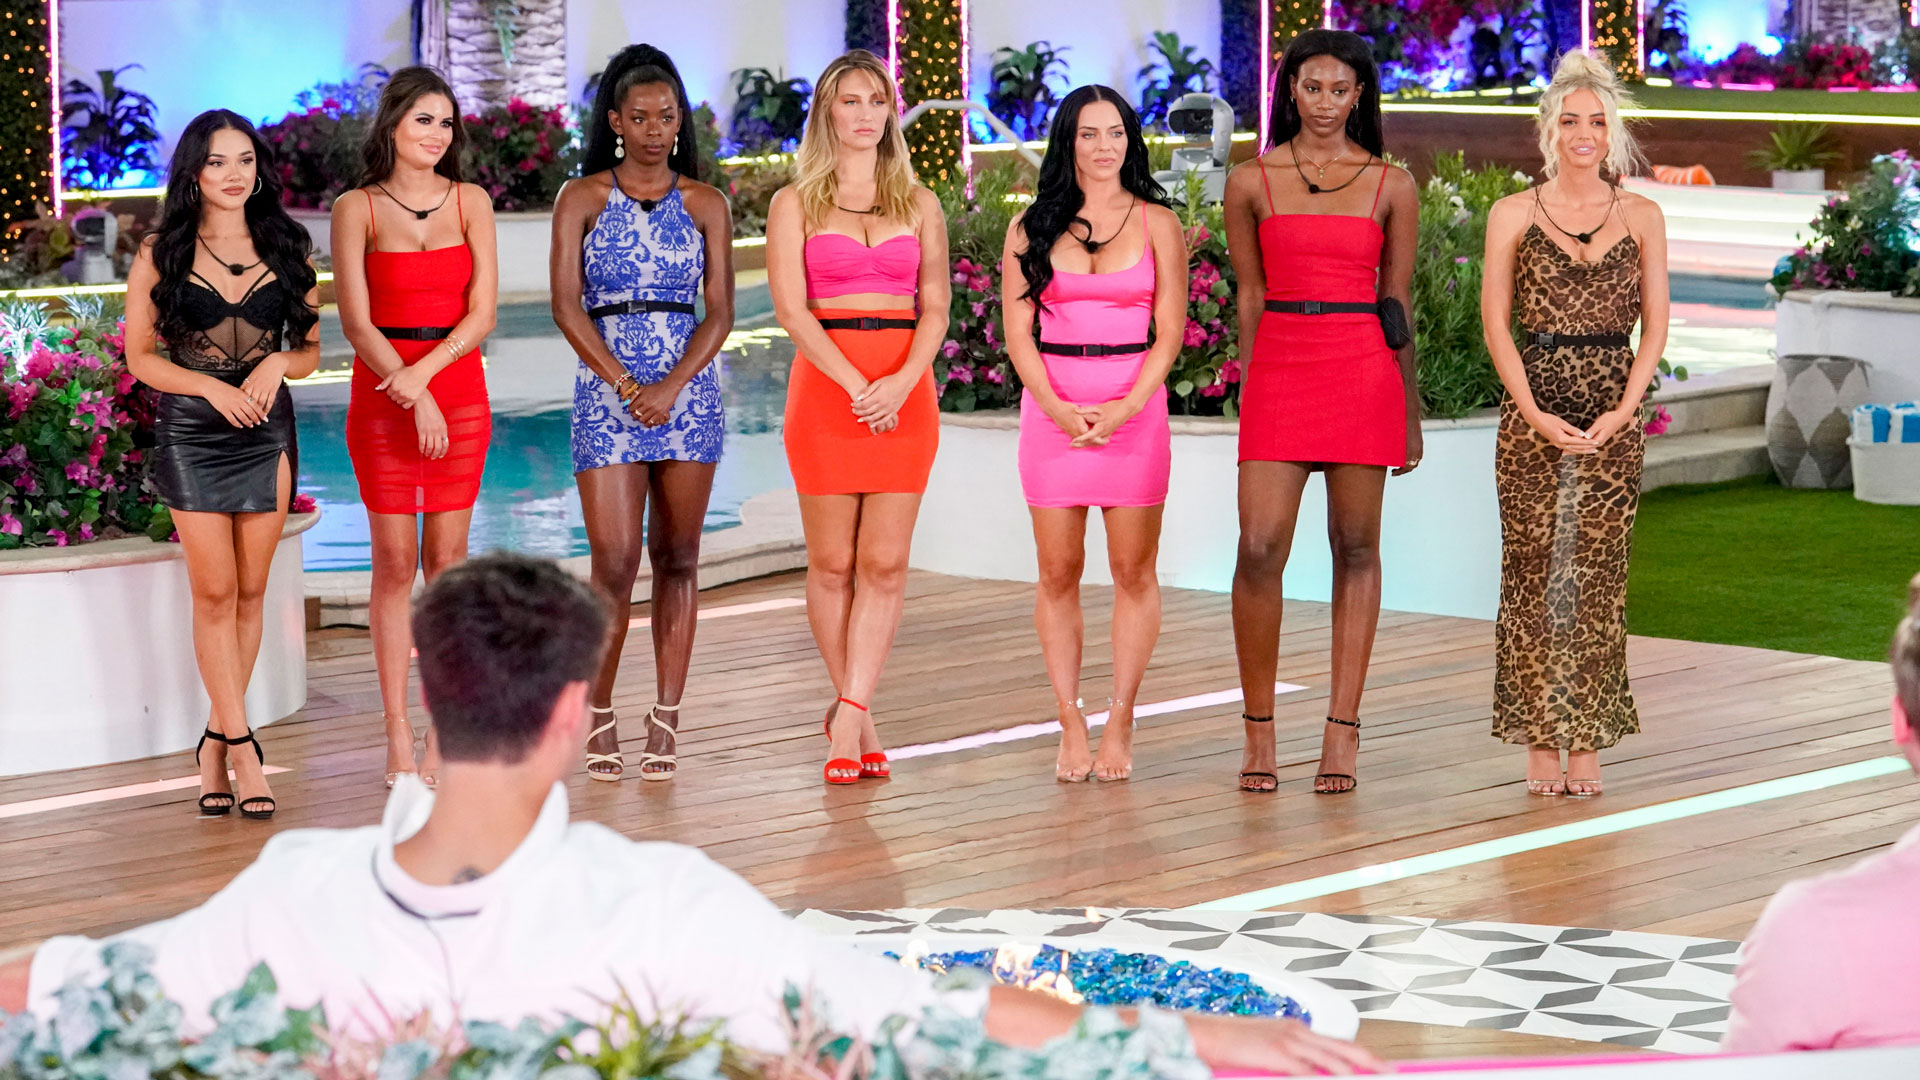 Watch Love Island Season 2 Episode 4 Episode 4 Full Show On Cbs All Access The love island producers trust their format — which is totally brutal — to provide the drama and twists, which in turn compels the cast into devastating fun fact: watch love island season 2 episode 4 episode 4 full show on cbs all access